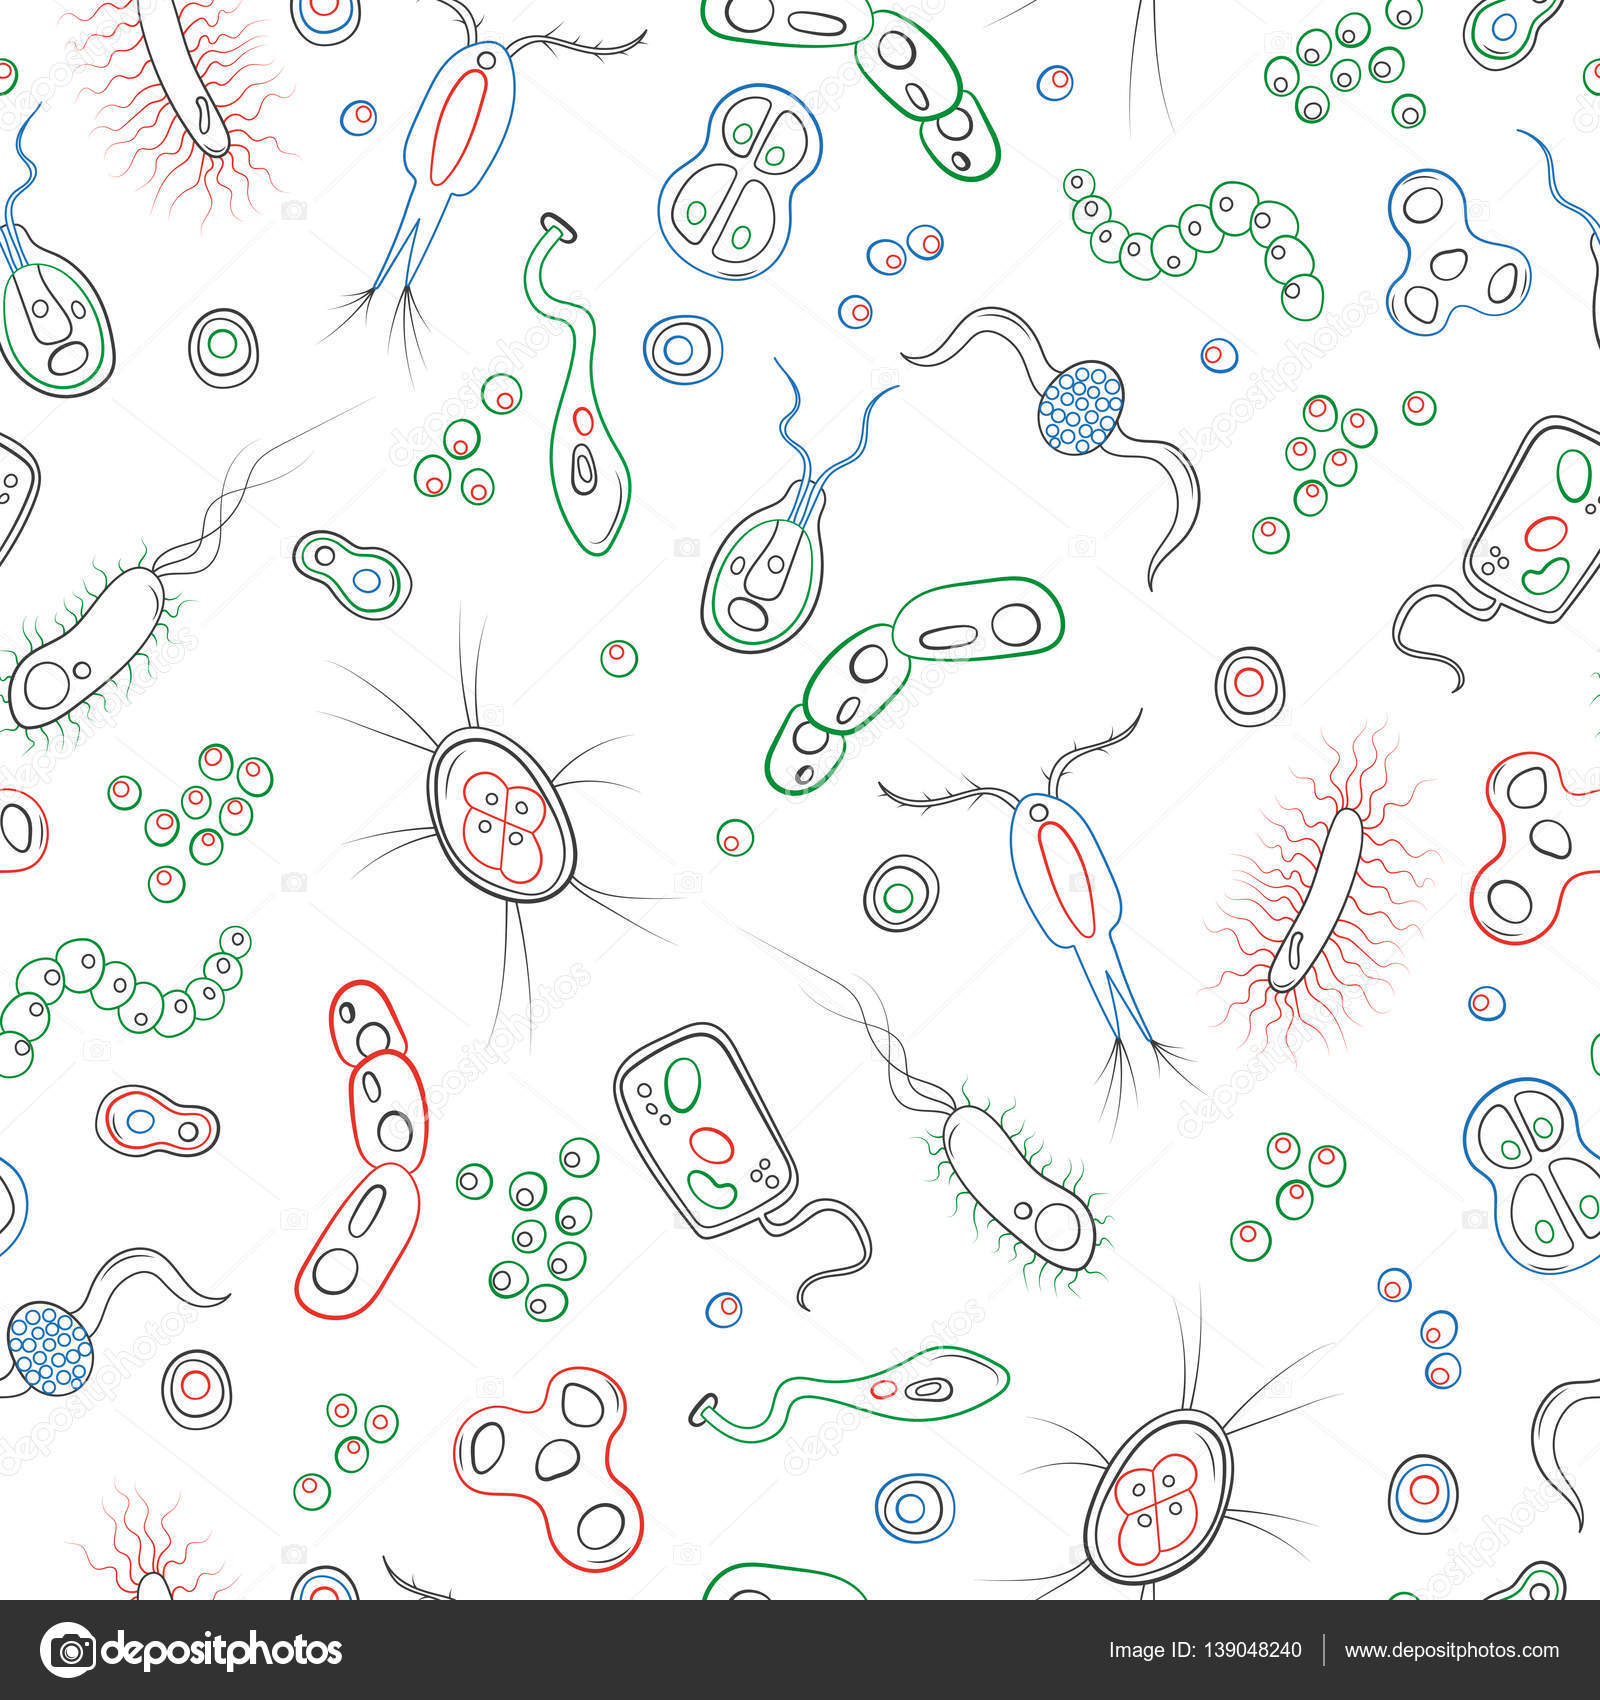 seamless pattern with contour images of bacteria germs and viruses simple colored contour icons